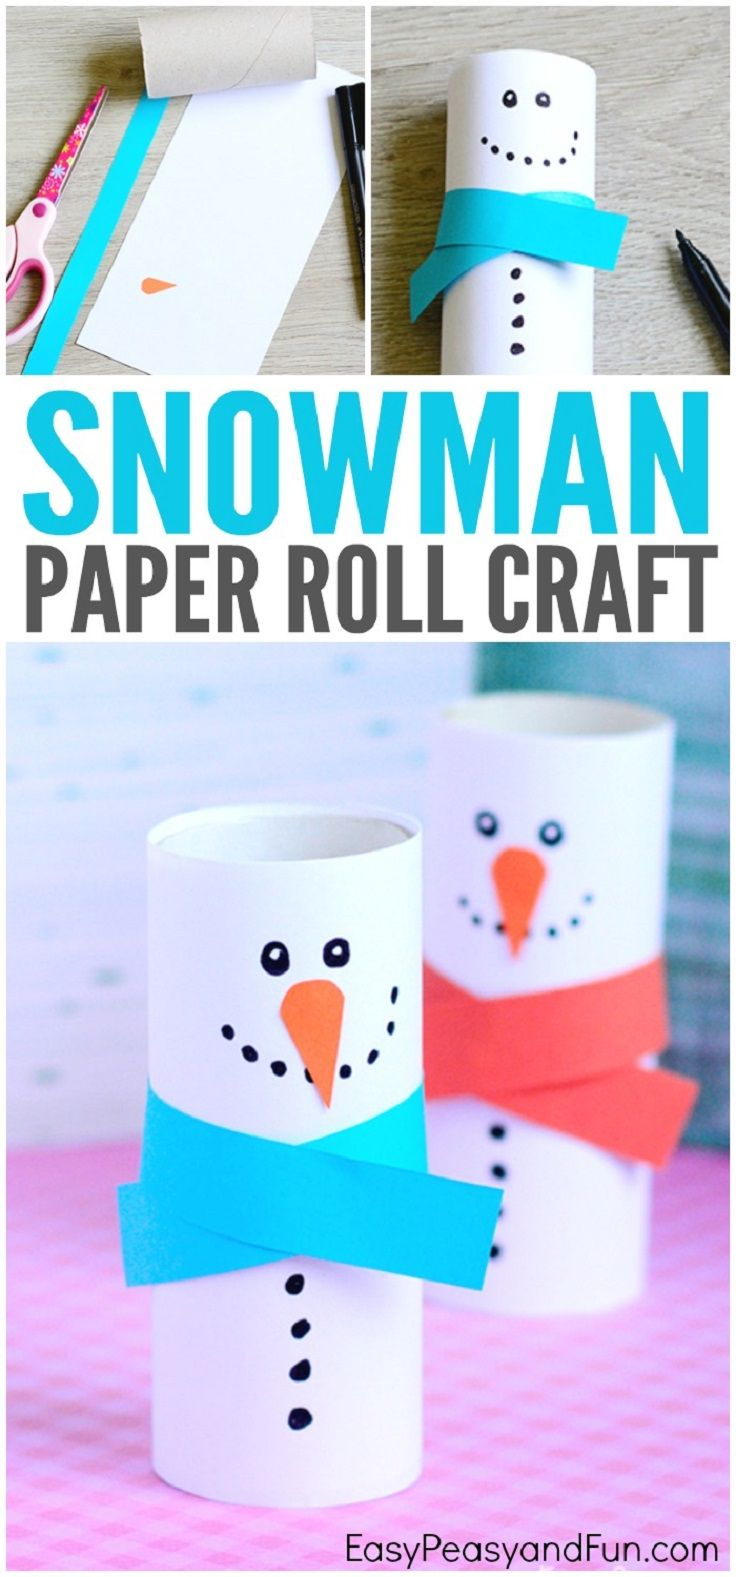 Paper Roll Snowman Craft - 14 Jingling Winter Crafts for Kids to Bring Flurries and Fun At Home